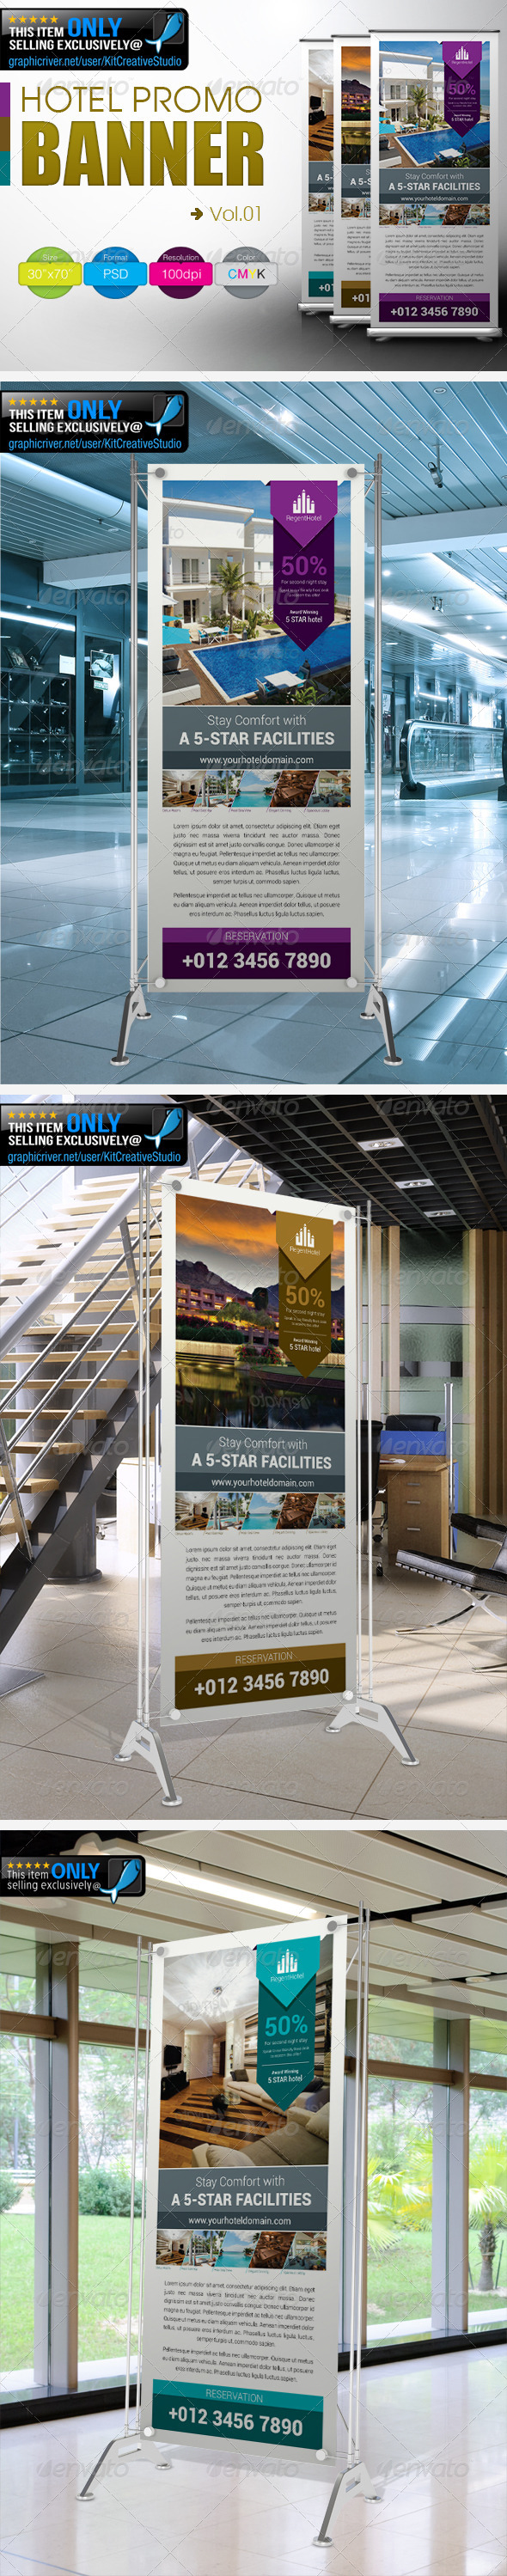 Hotel Promo Banner Vol.01 - Signage Print Templates